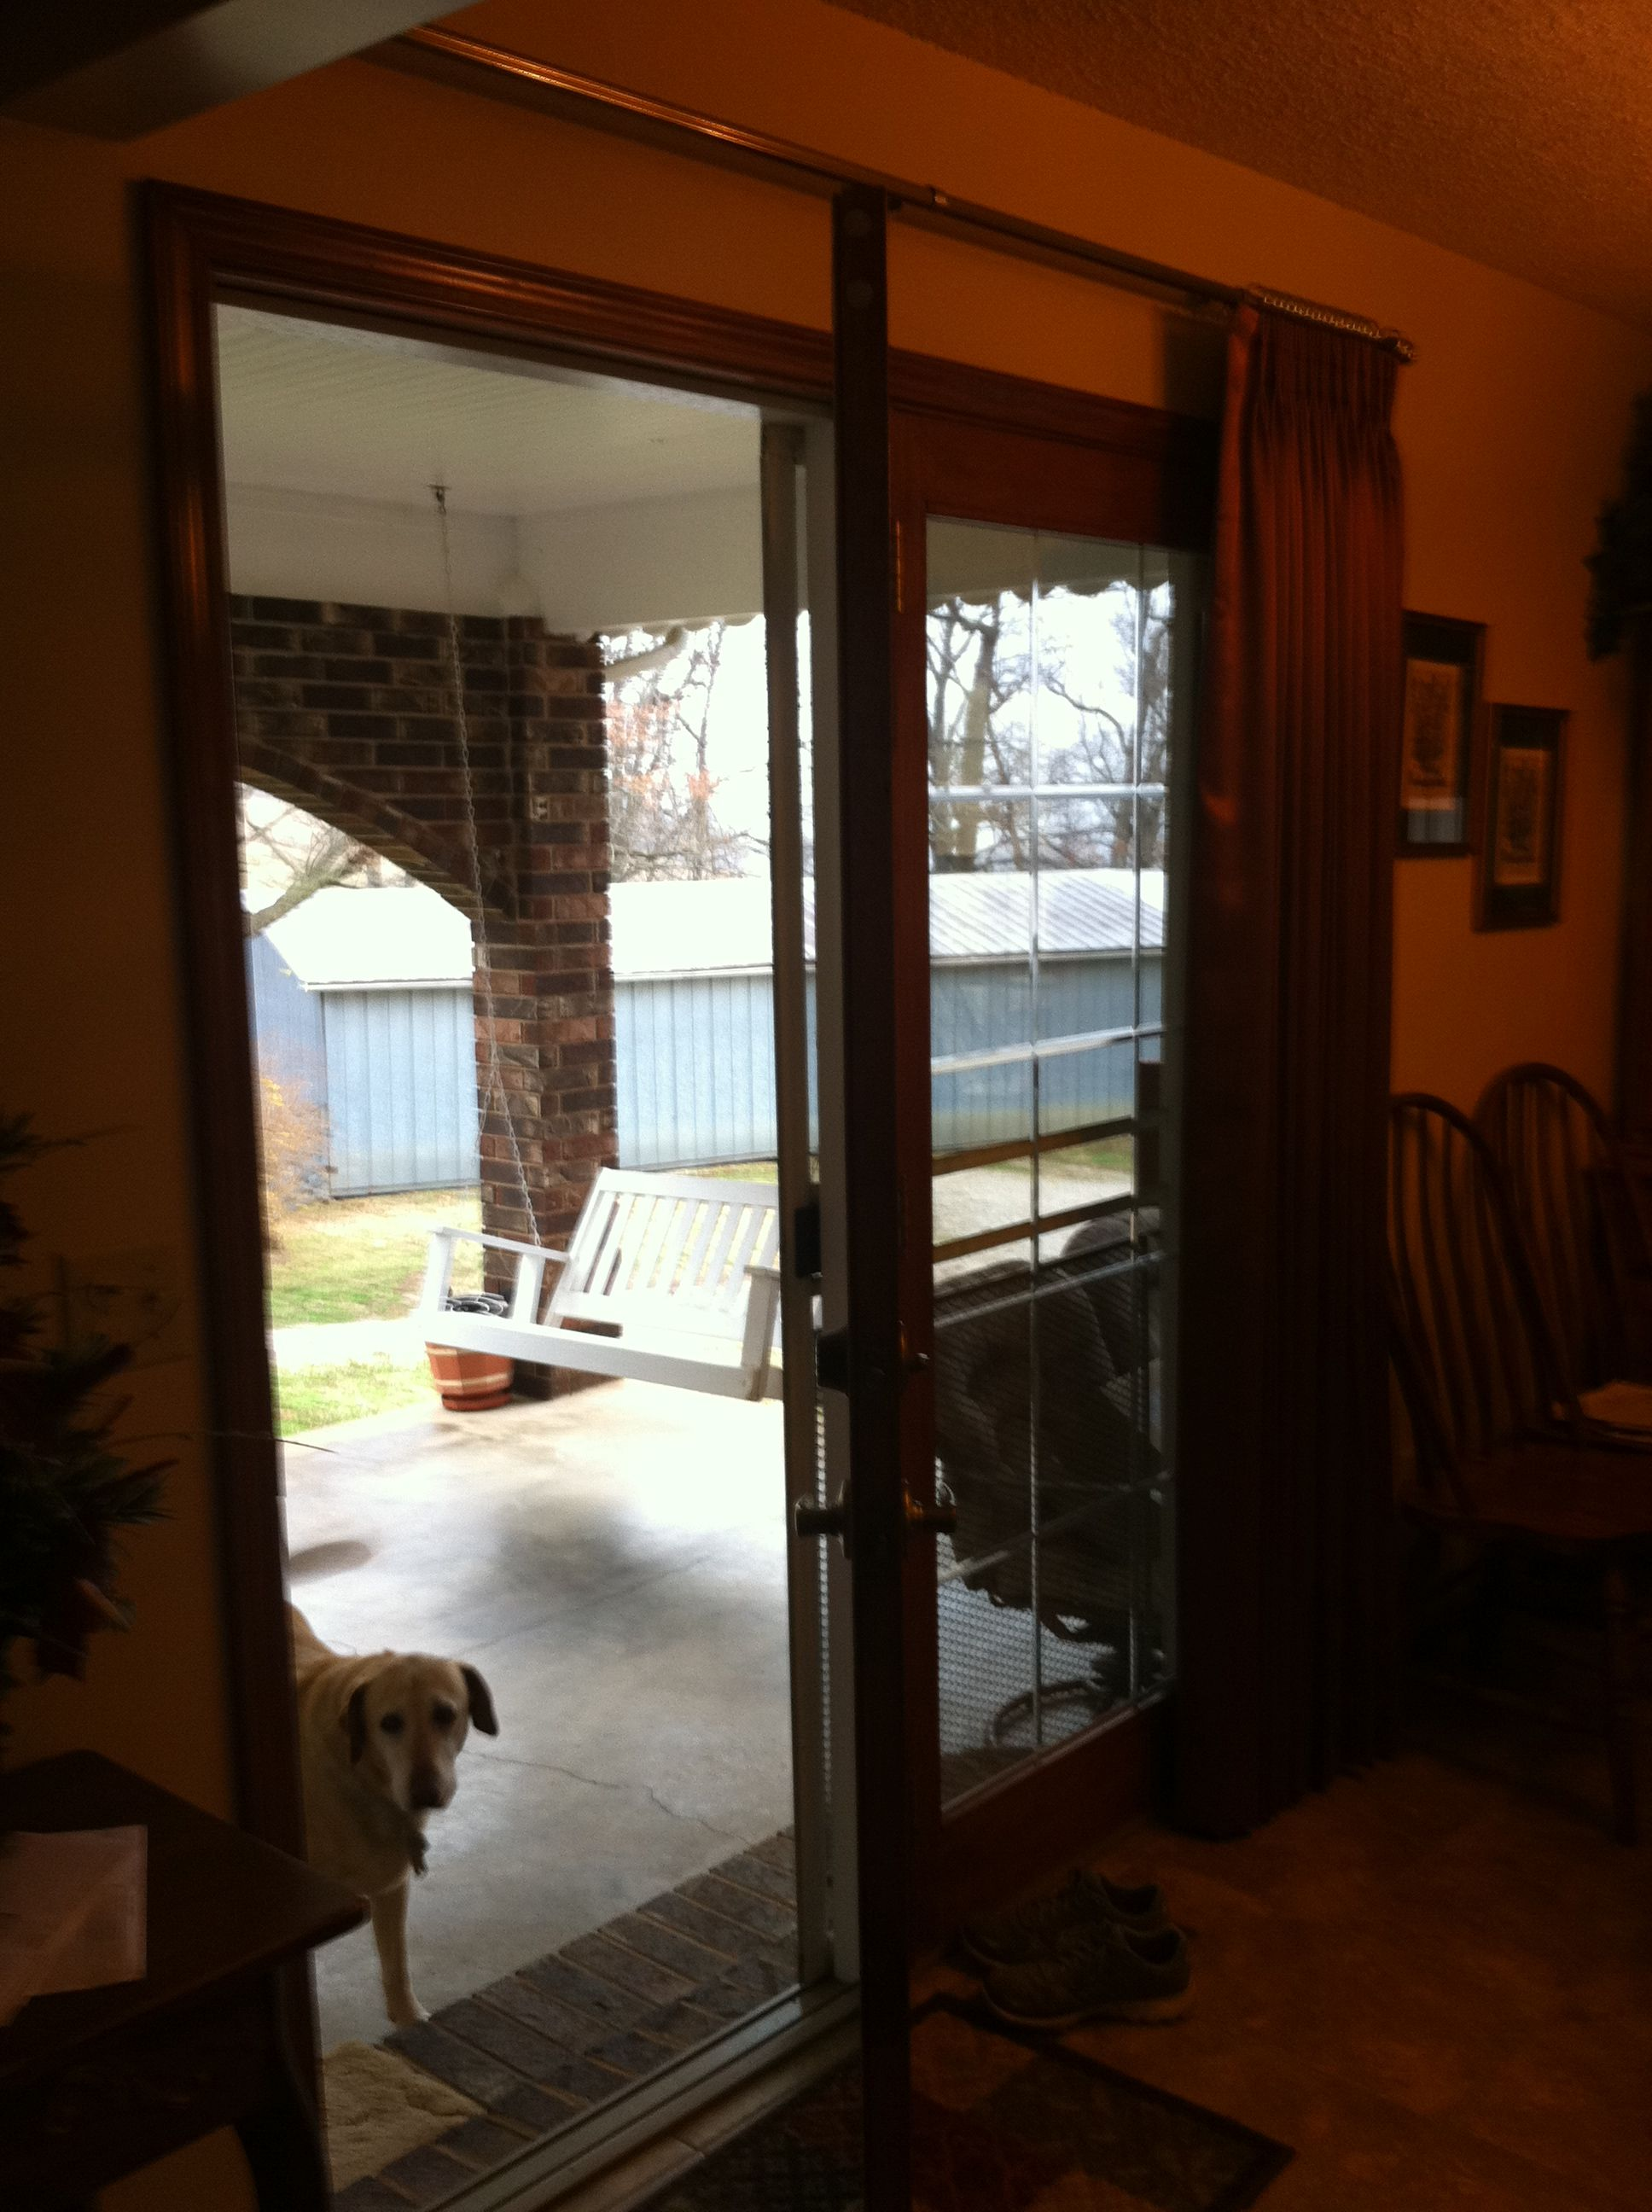 Patio Door Similiar To French Door But Only One Side